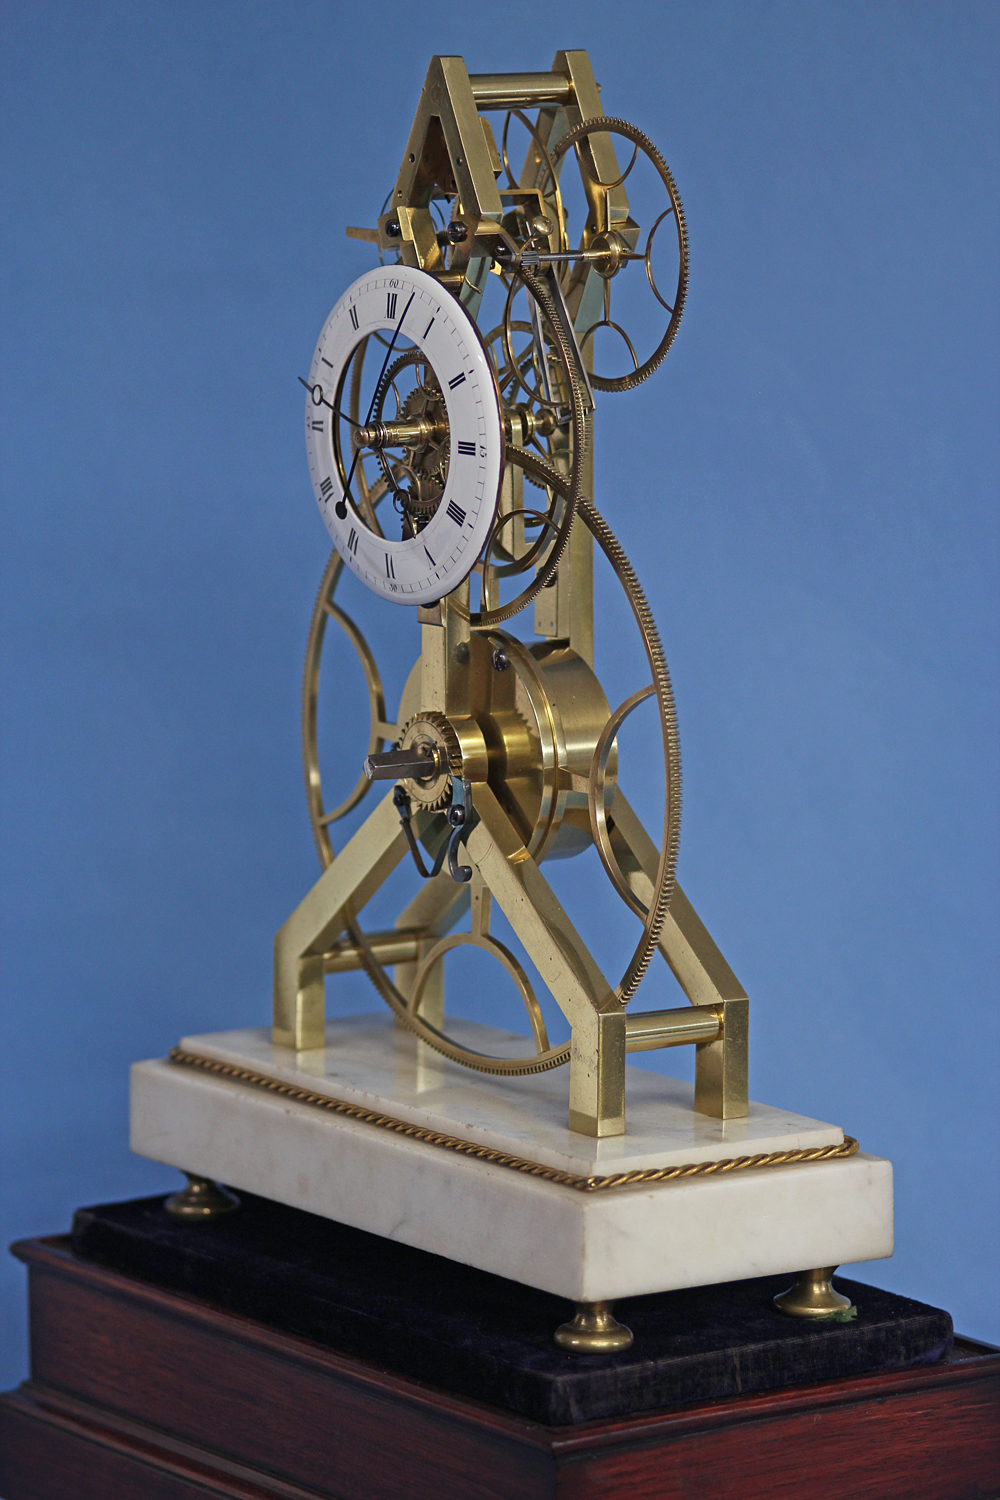 C 1815 Rare French Great Wheel Skeleton Clock With Balance